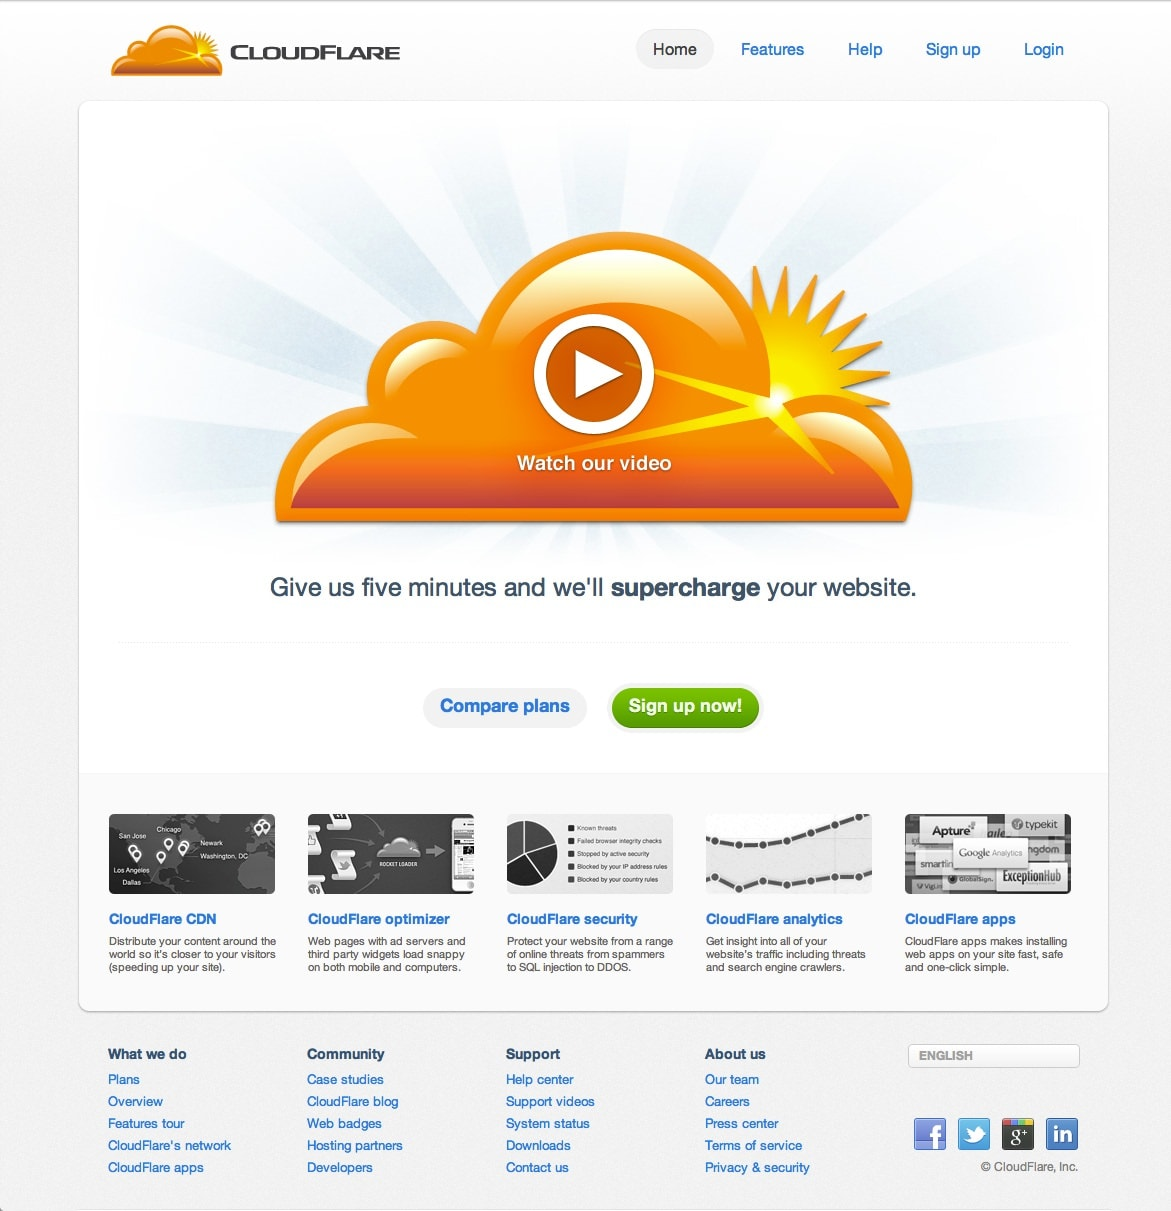 CloudFlare – Supercharge your website in five minutes?